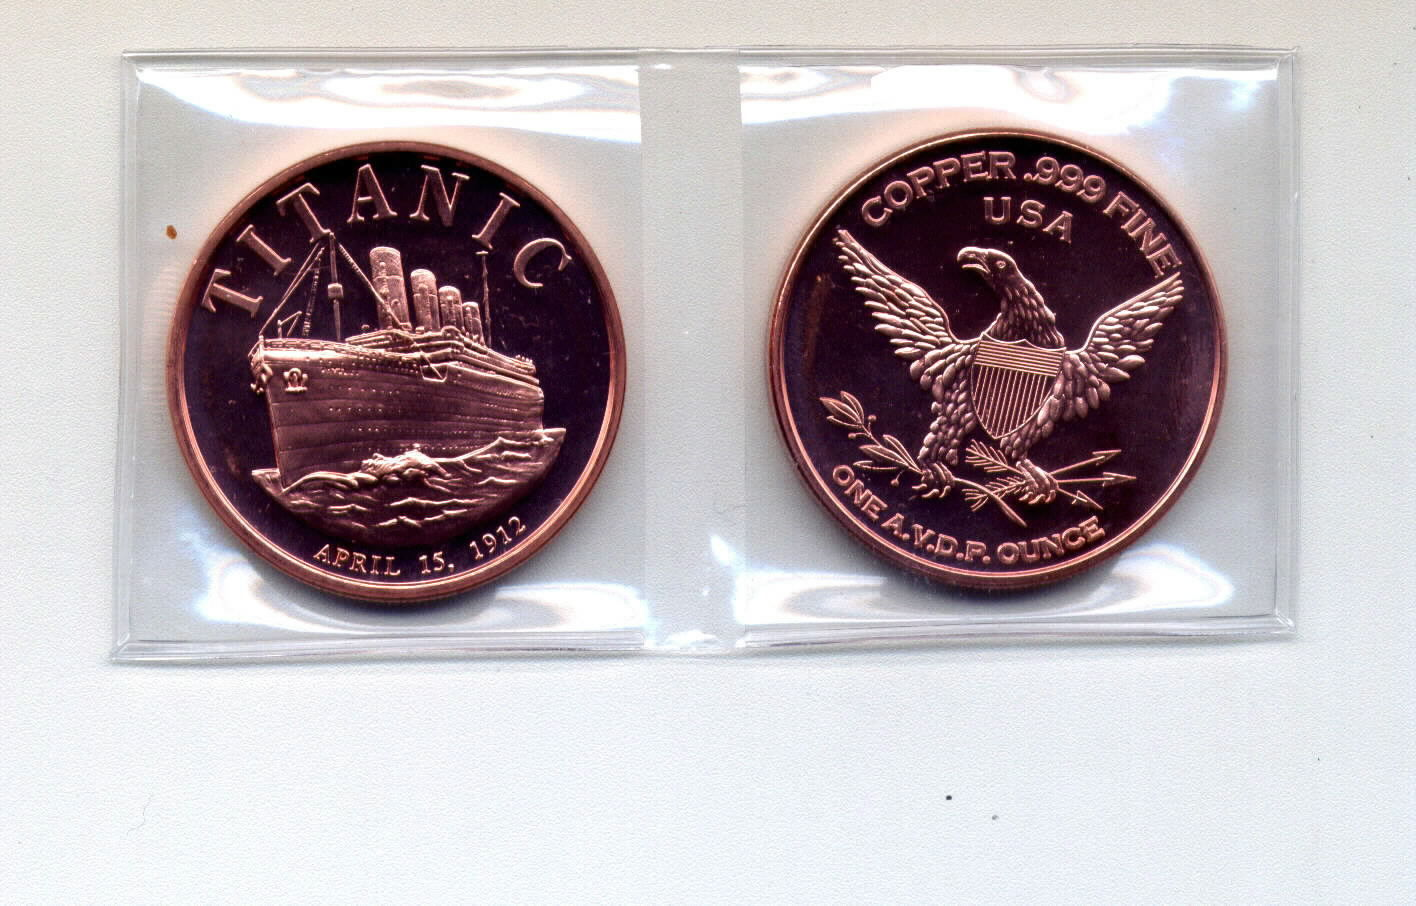 Titanic 1912 1 oz .999 Copper Bullion Coin